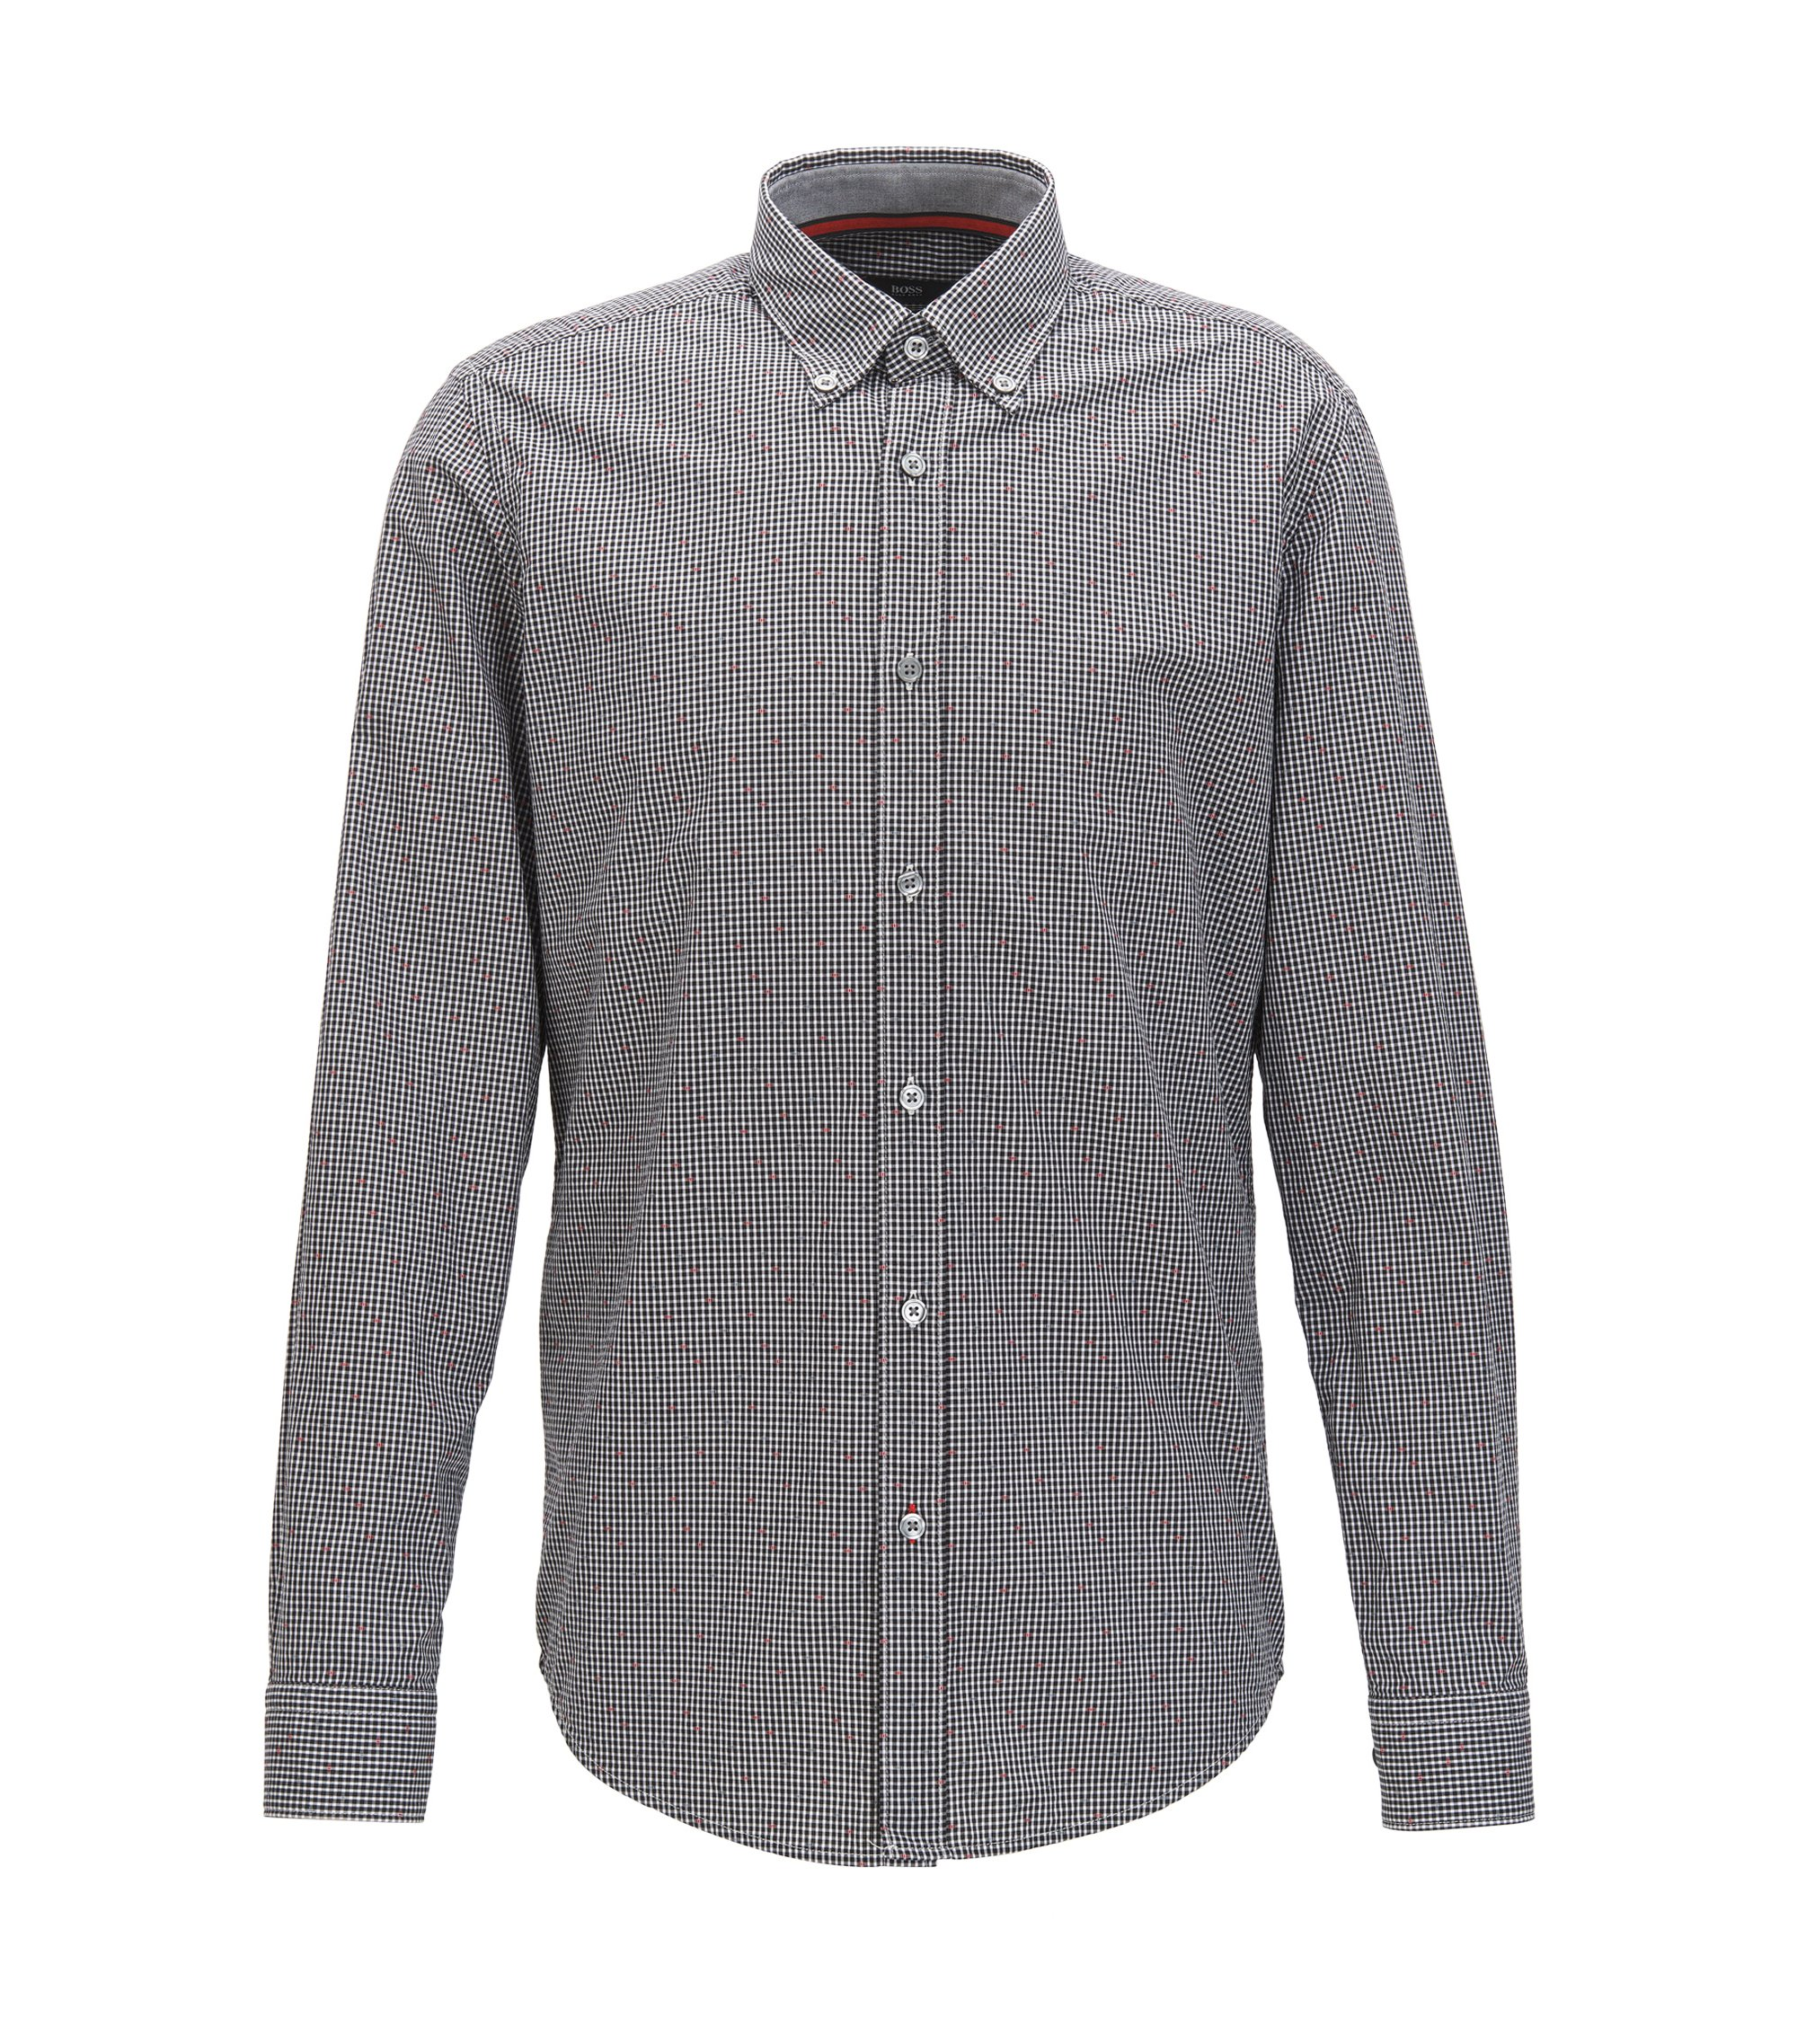 Patterned Cotton Sport Shirt, Regular Fit | Lod, Black